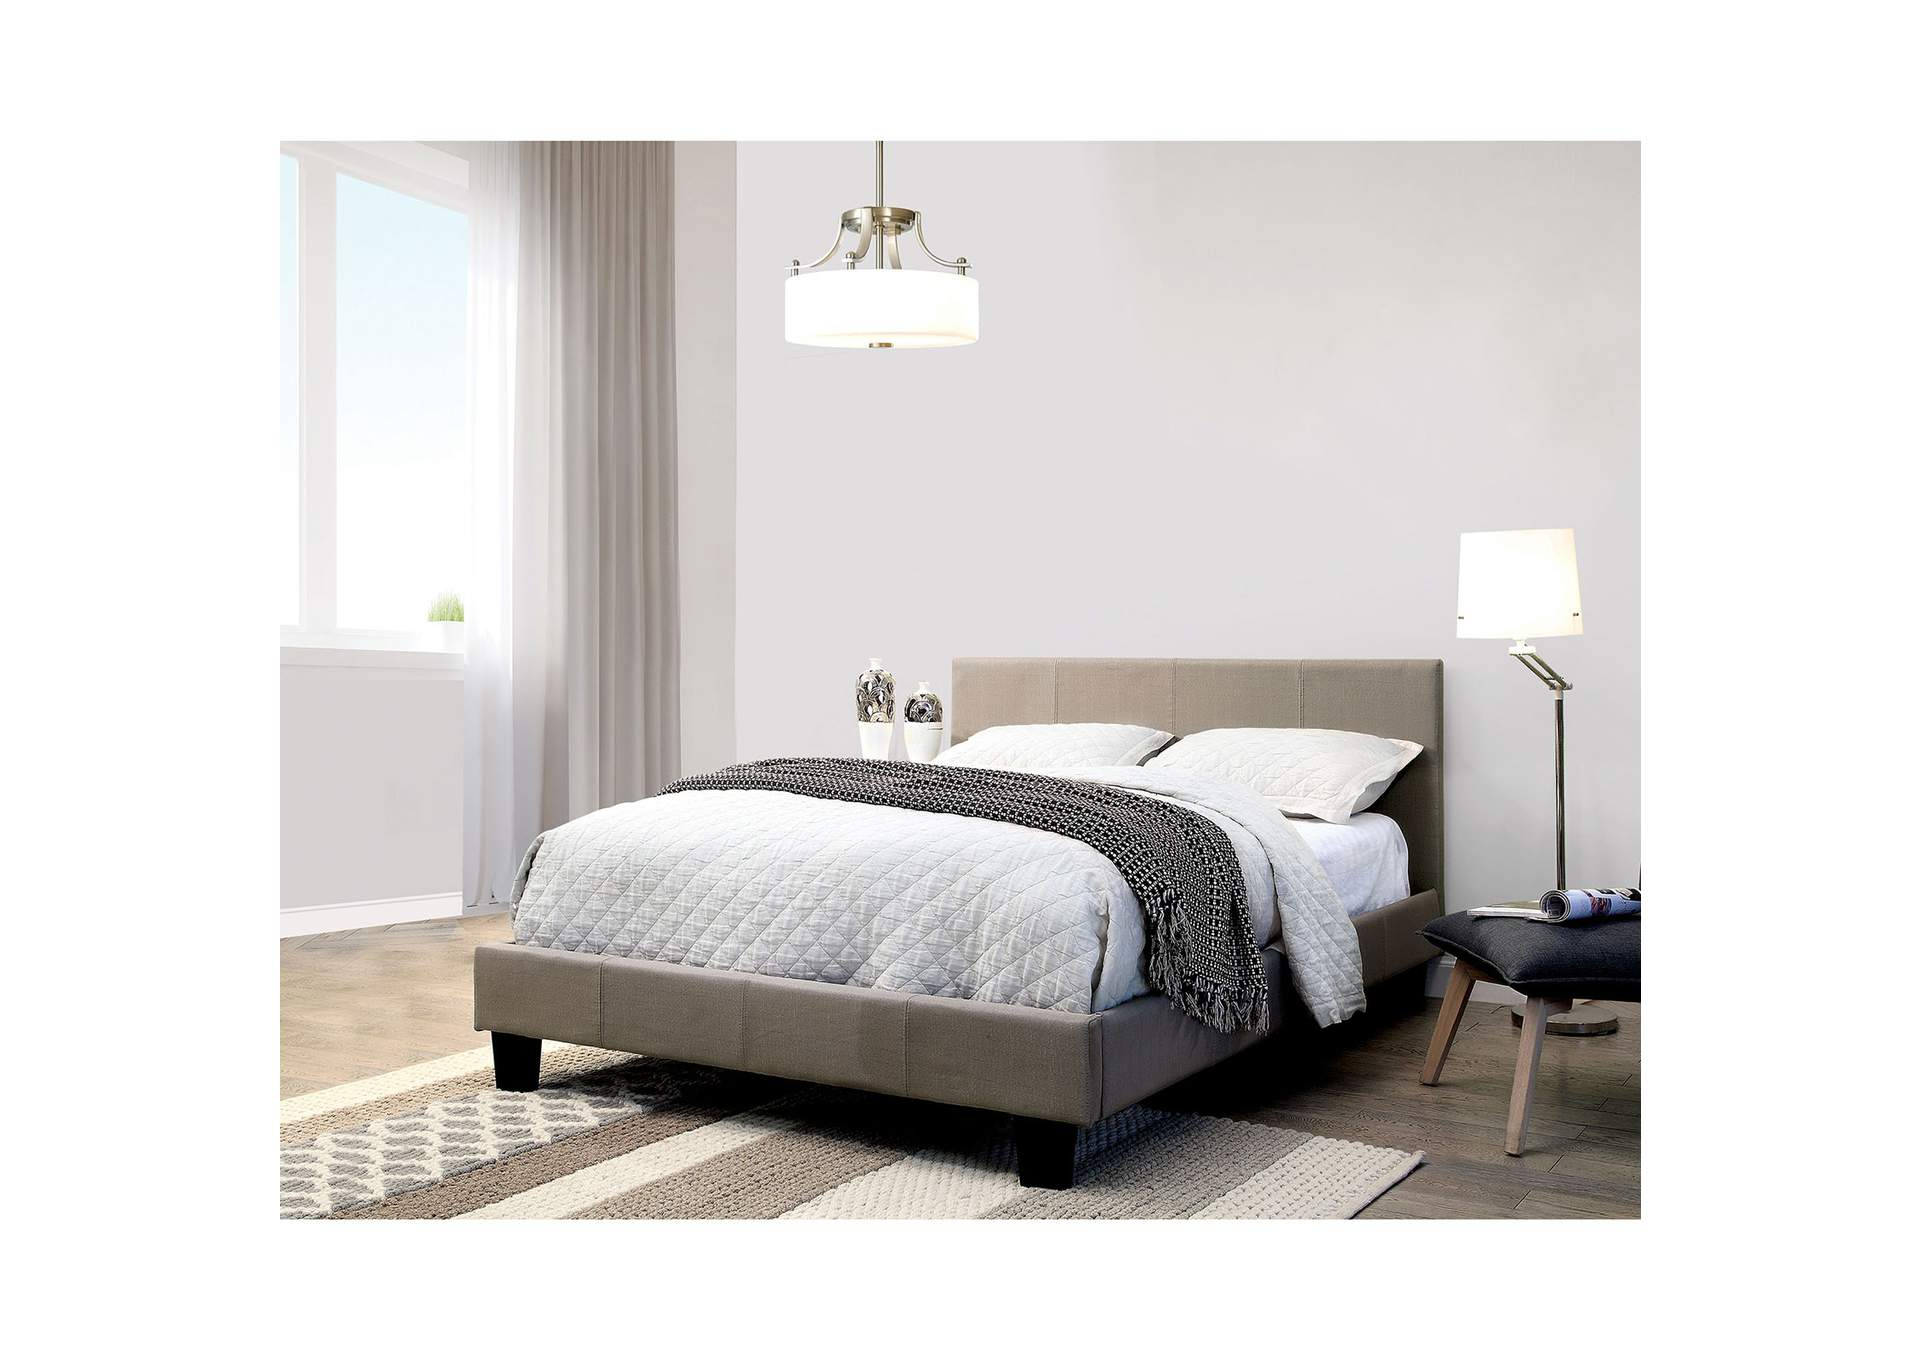 Sims Gray Queen Bed,Furniture of America